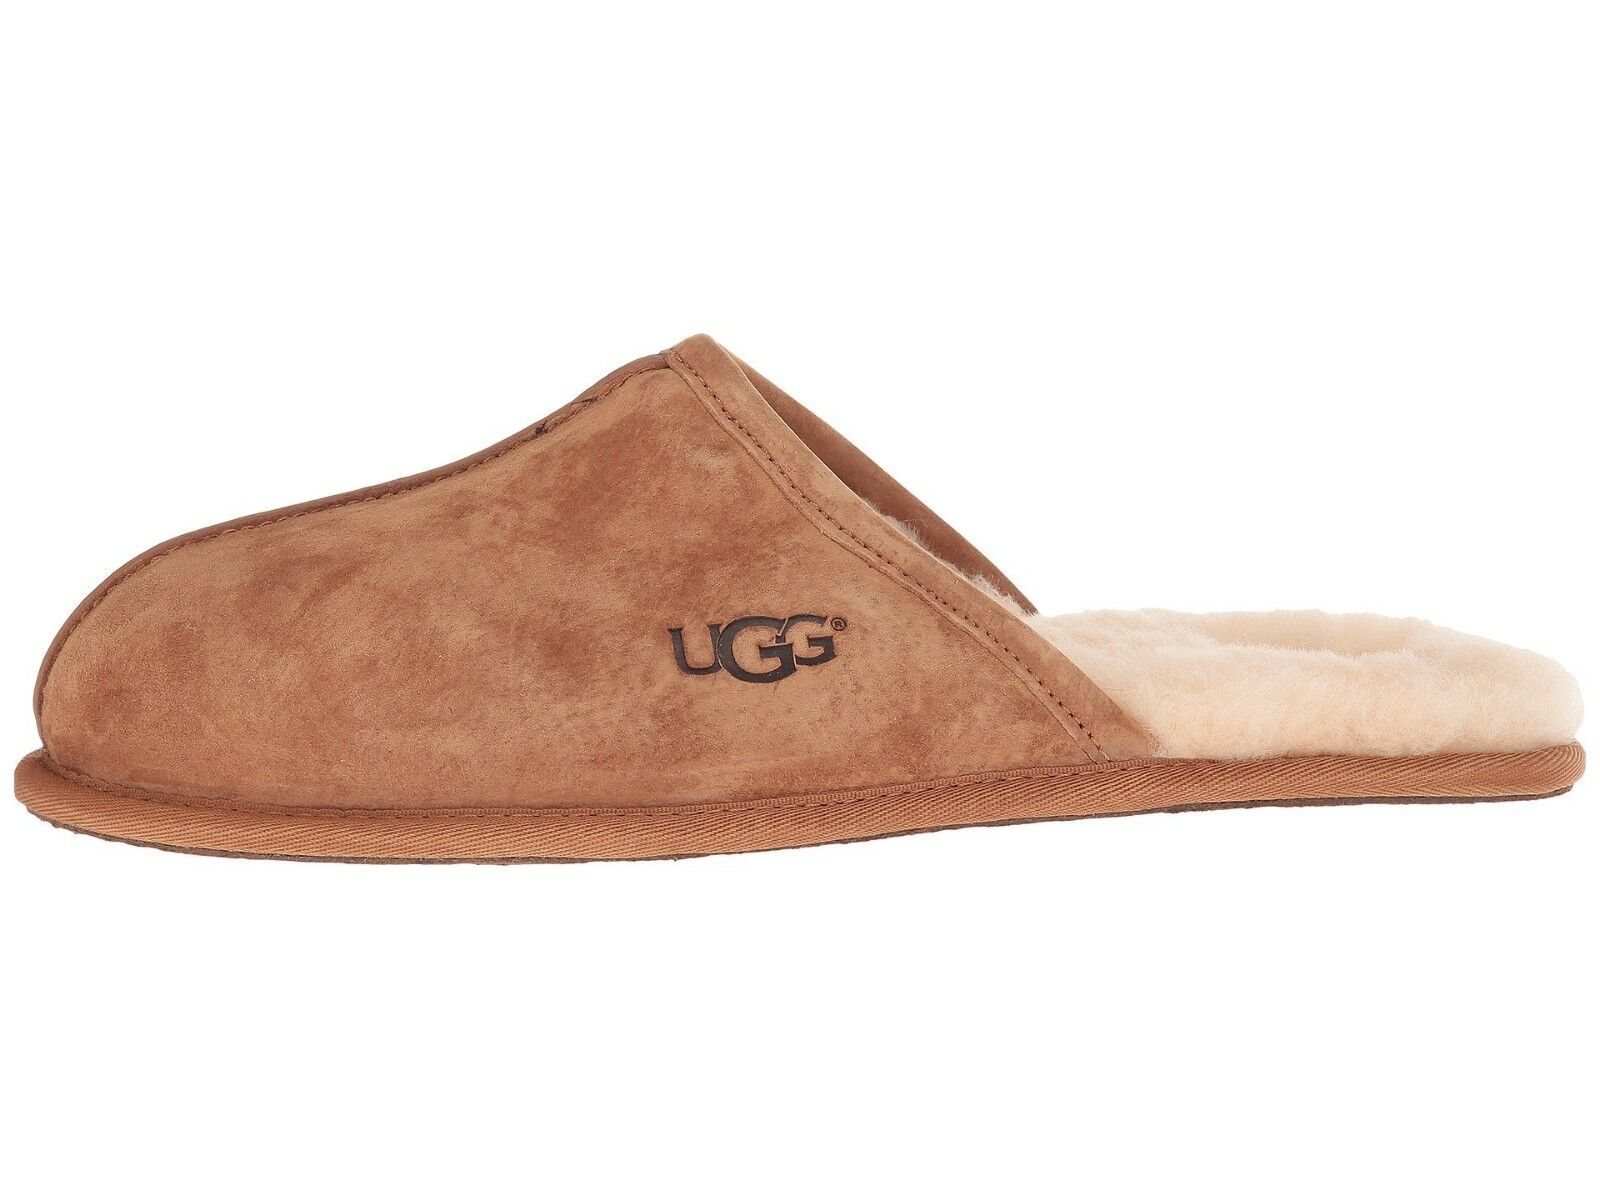 UGG Men's SCUFF Casual Comfort Suede Slip On Slippers CHESTNUT 1101111